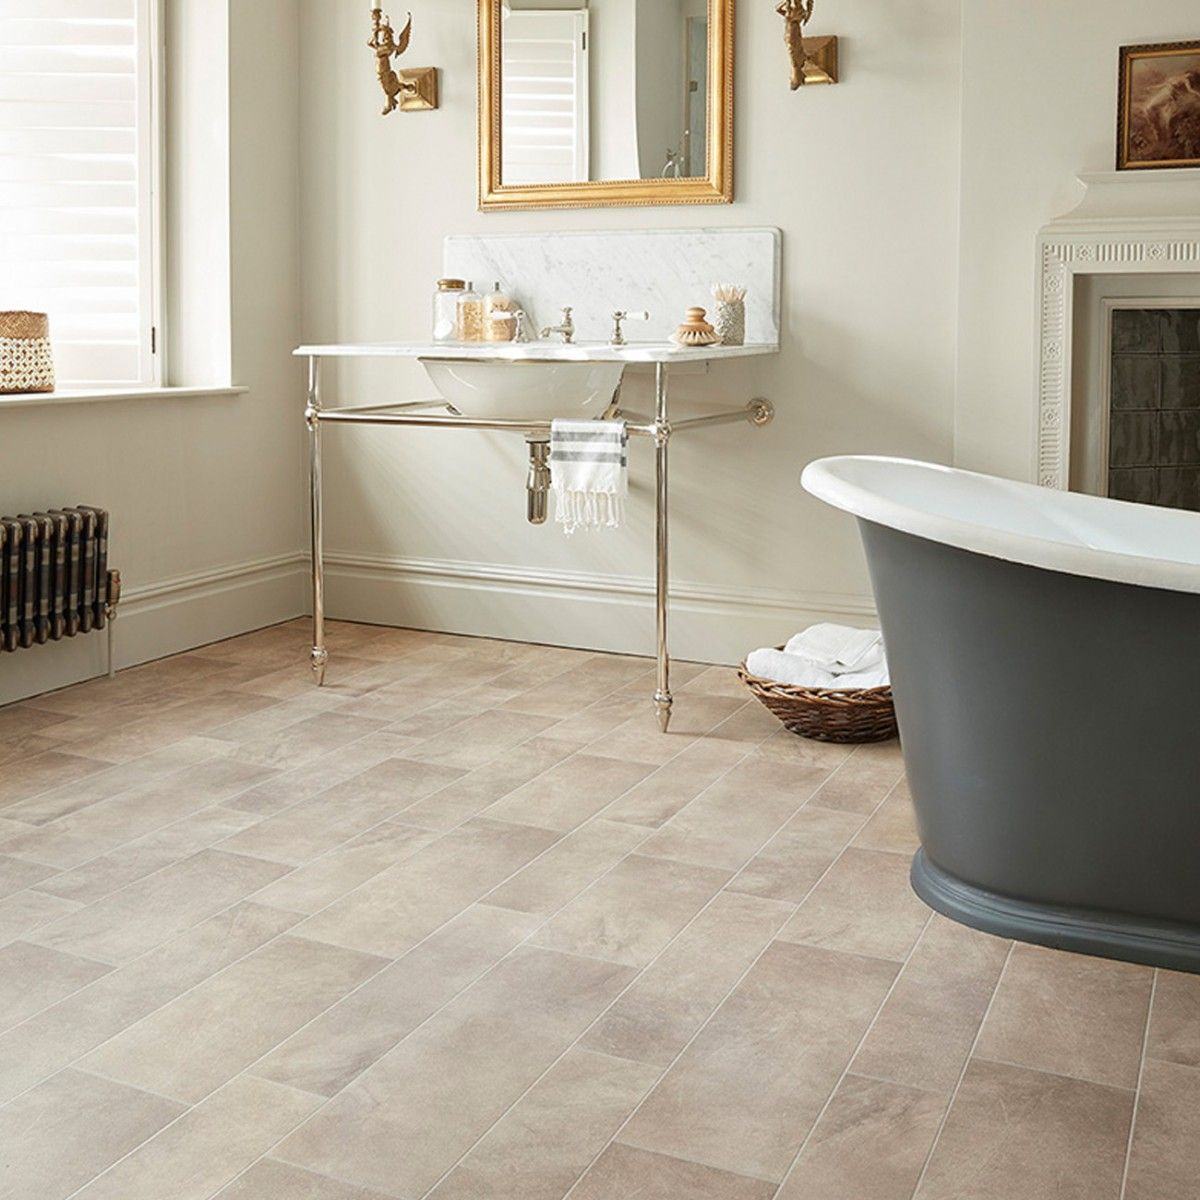 A Natural Stone Designs With Added Durability That Gives This Vinyl Flooring An Outstanding Acoustic And Bathroom Vinyl Vinyl Flooring Bathroom Vinyl Flooring